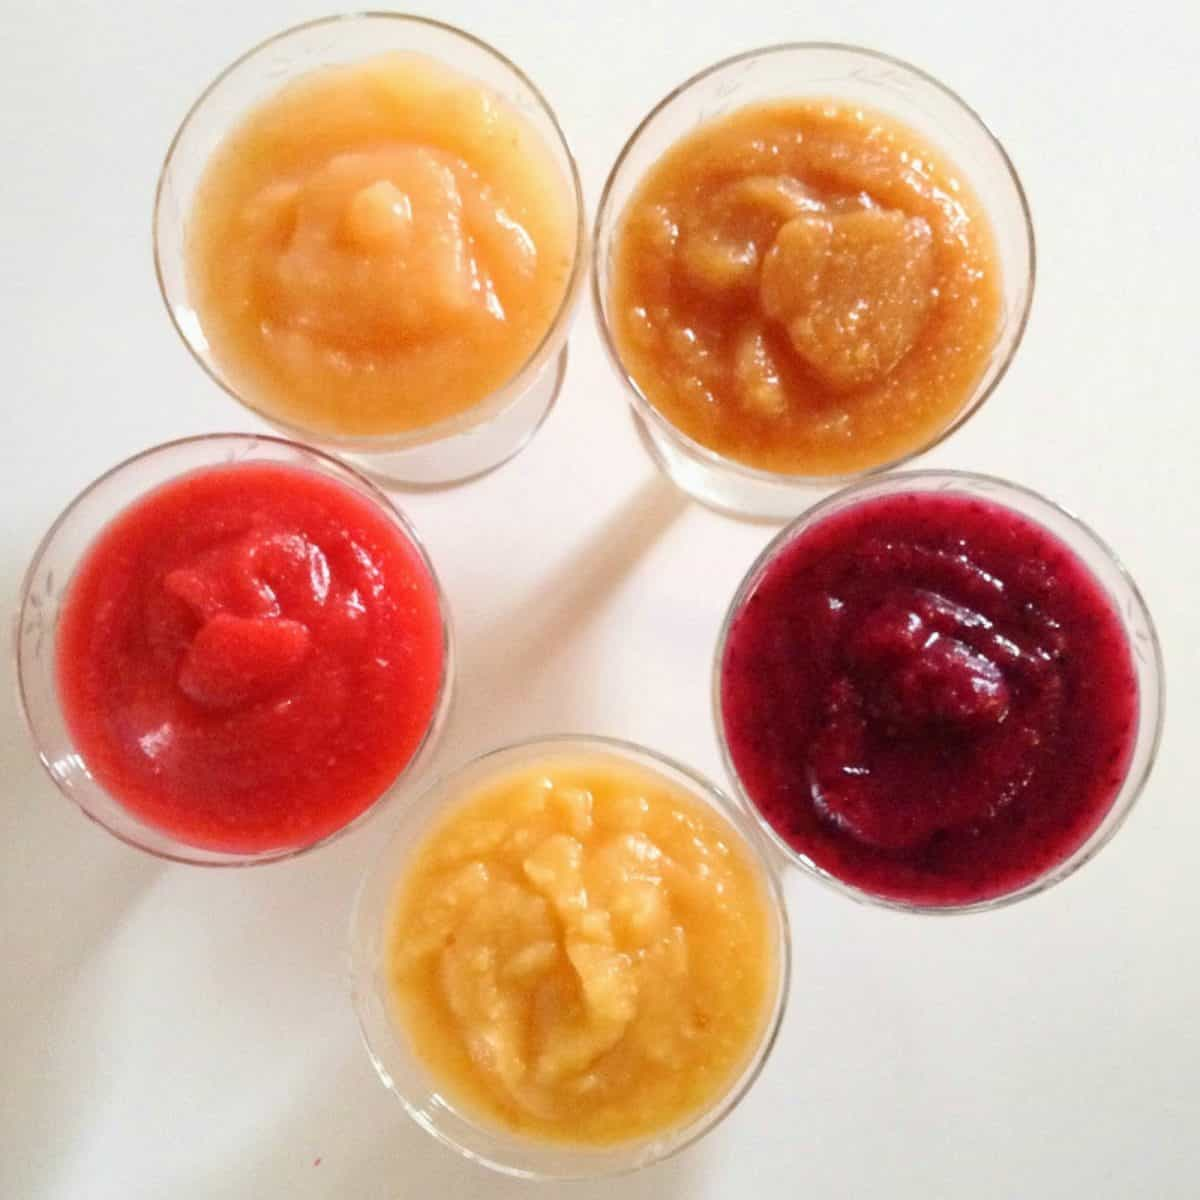 Cleaning out the Freezer… into Beautiful Flavored AppleSauce